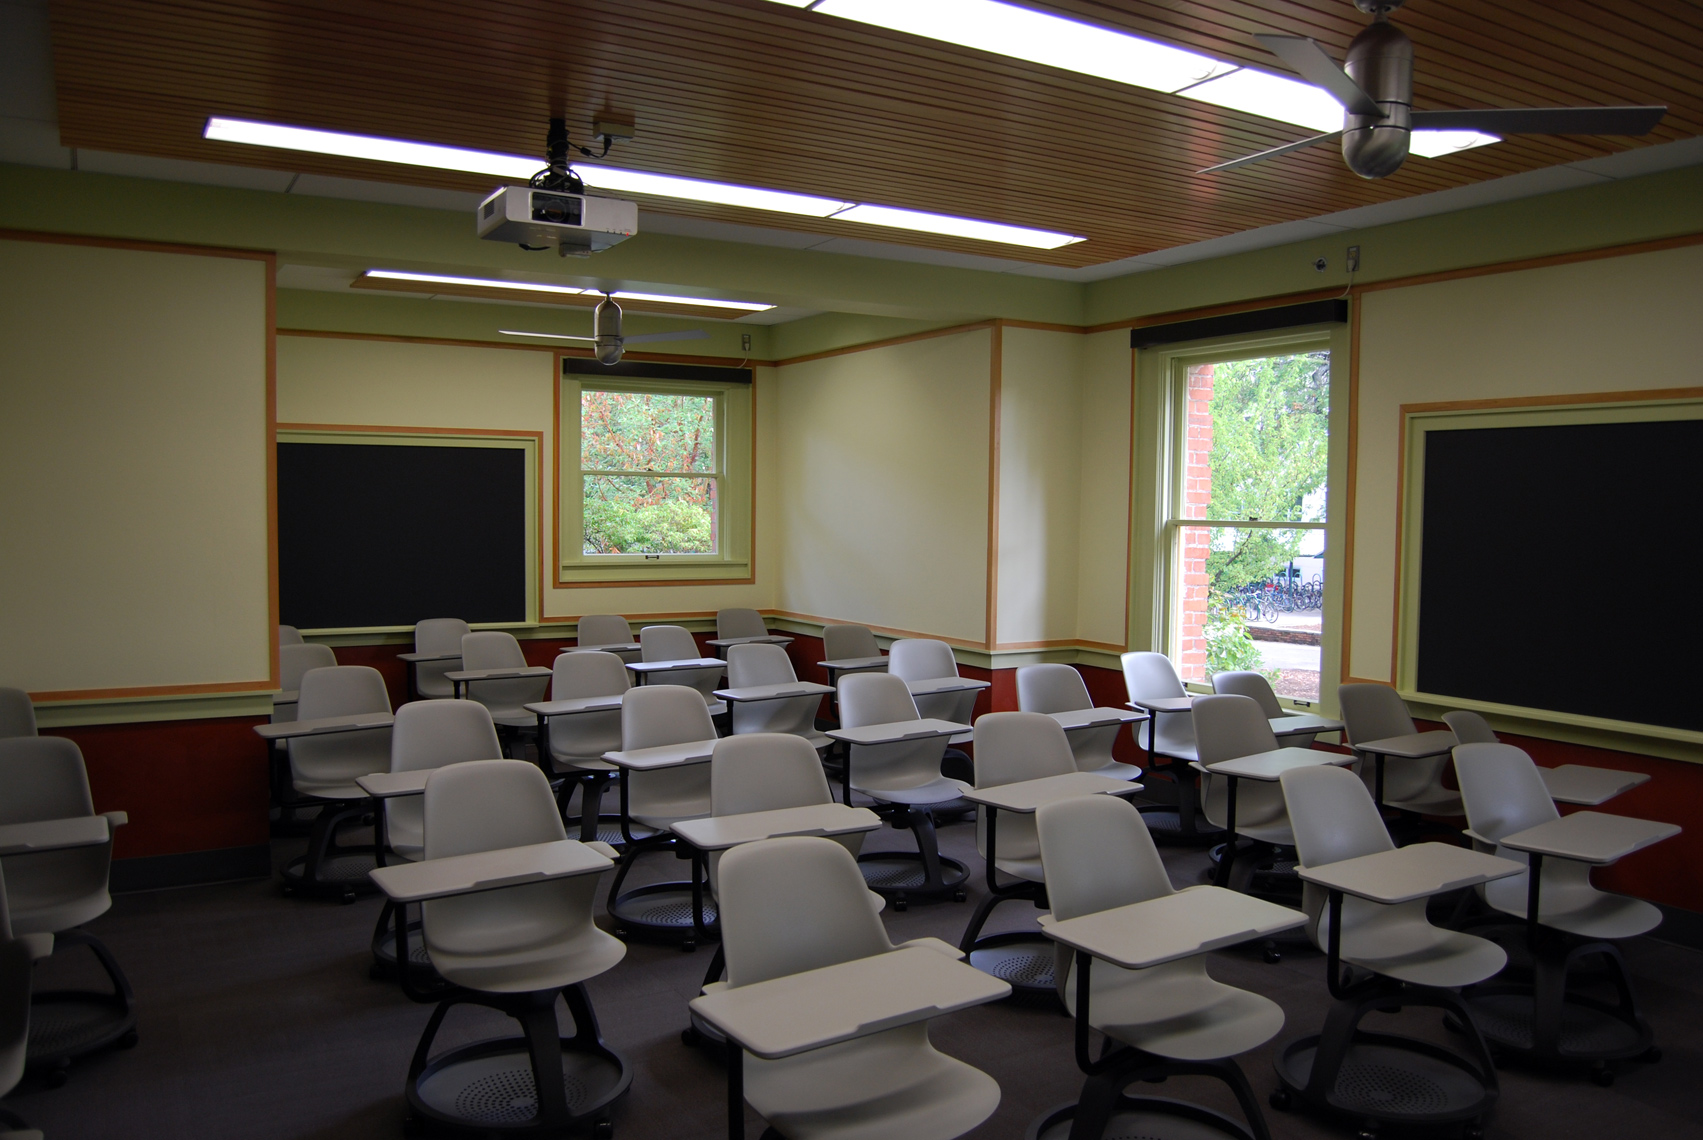 UOFRIEND_INST_CLASSROOM4_SMALL